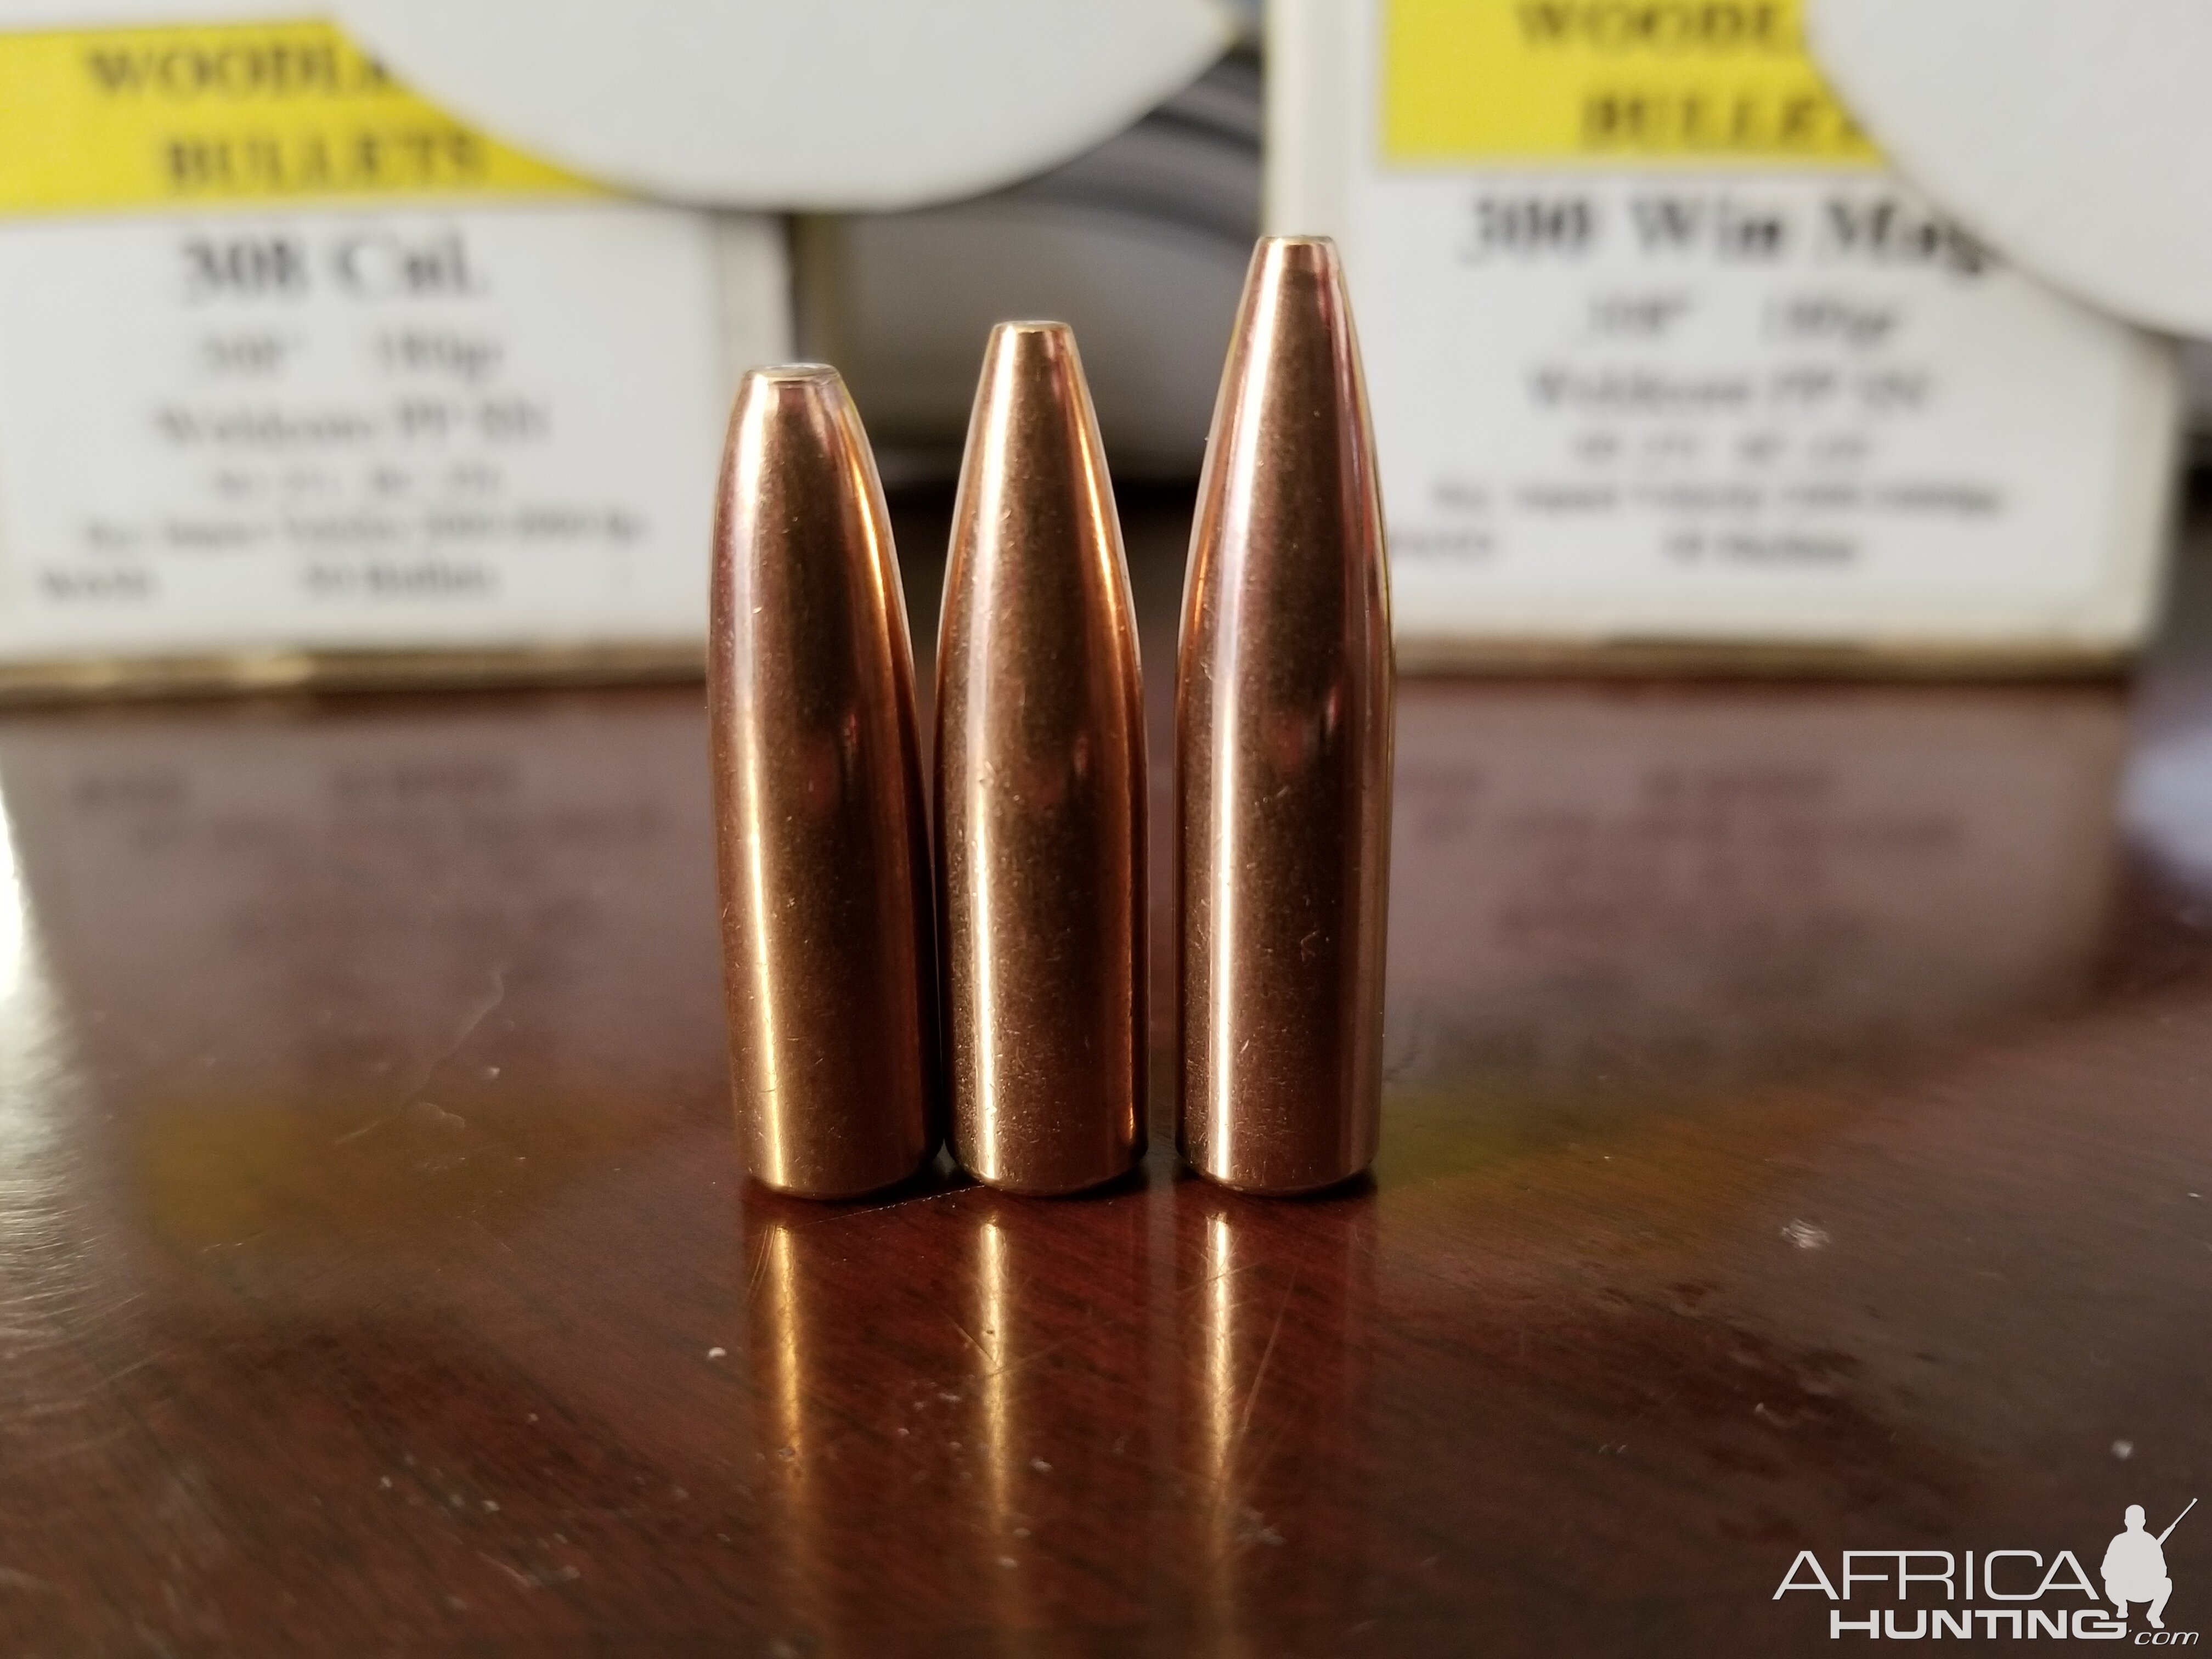 180gr, 180gr for Win Mag, 200gr Woodleigh Bullets